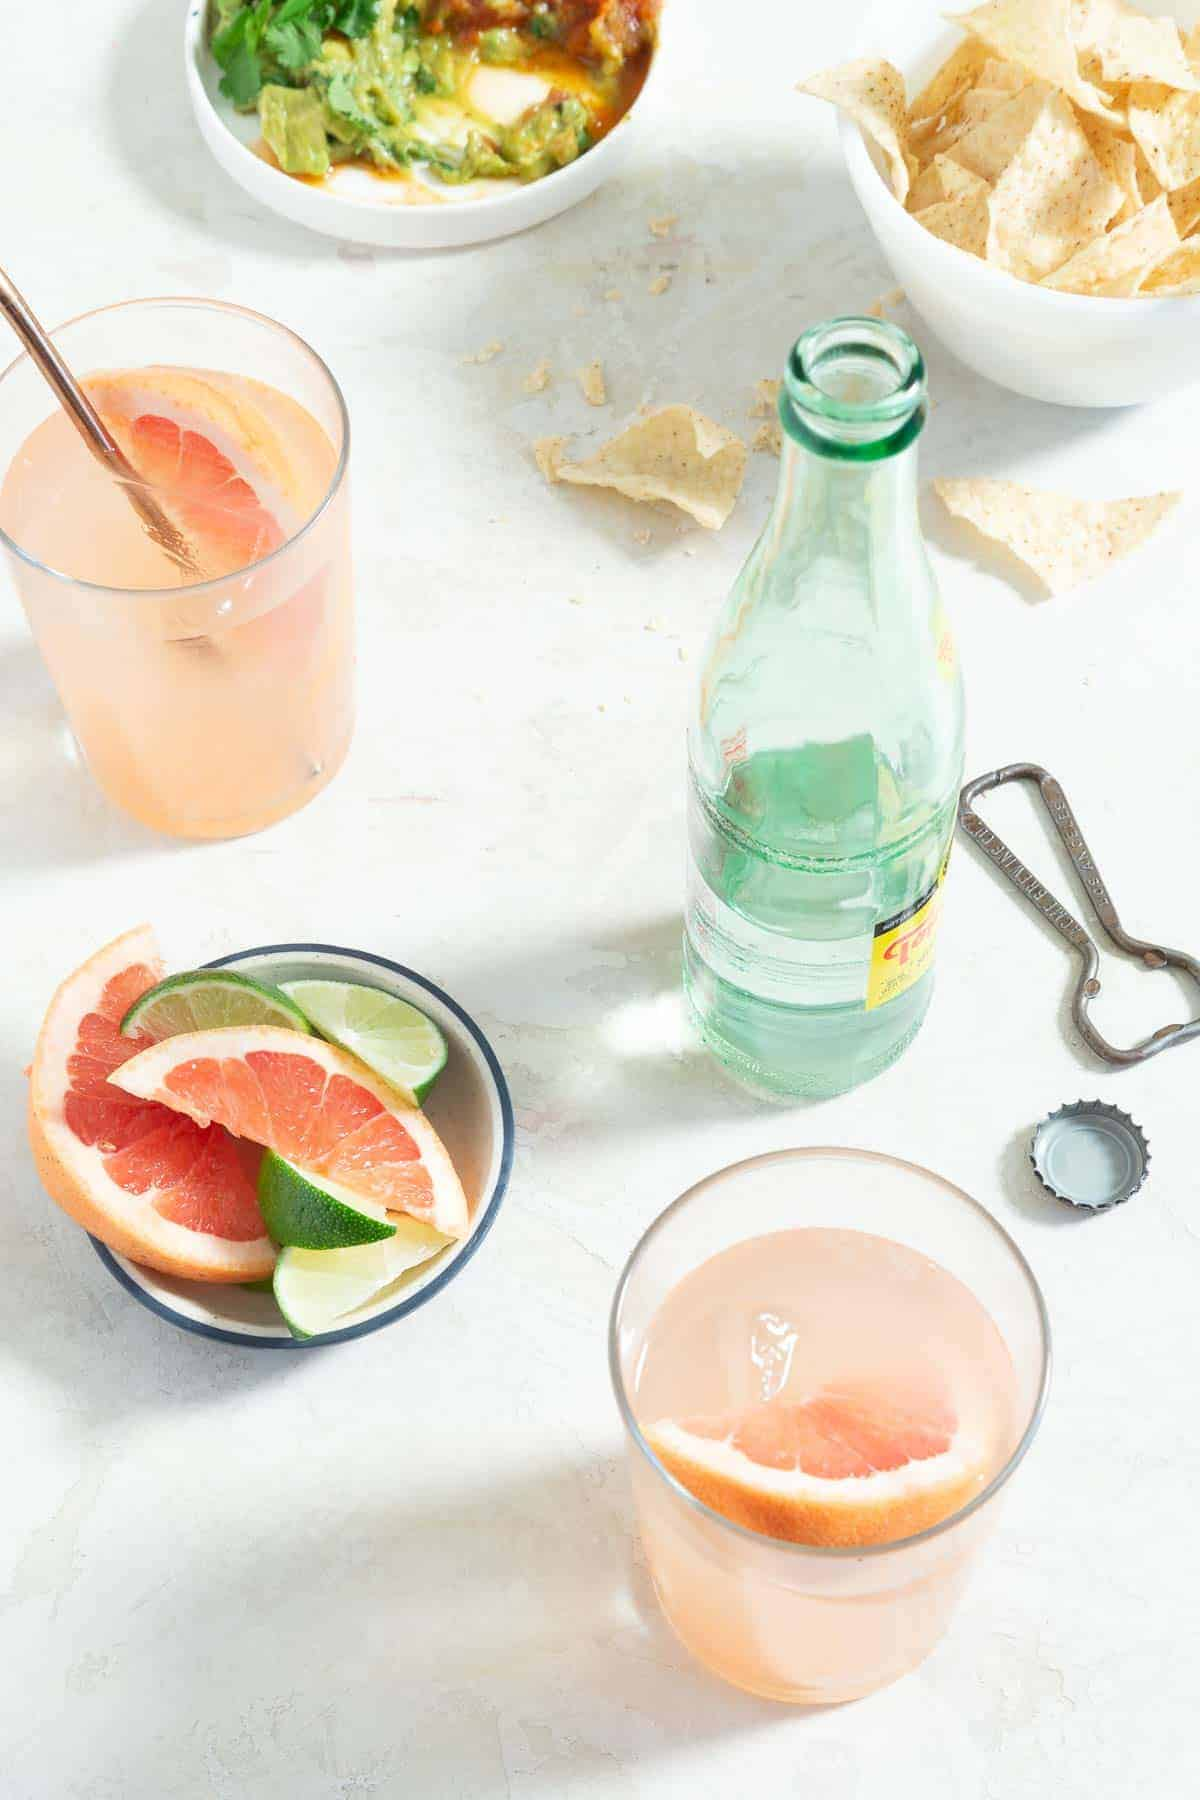 two pink cocktails with grapefruit garnishes surrounded by a bottle of sparkling water, citrus garnishes and chips and guacamole